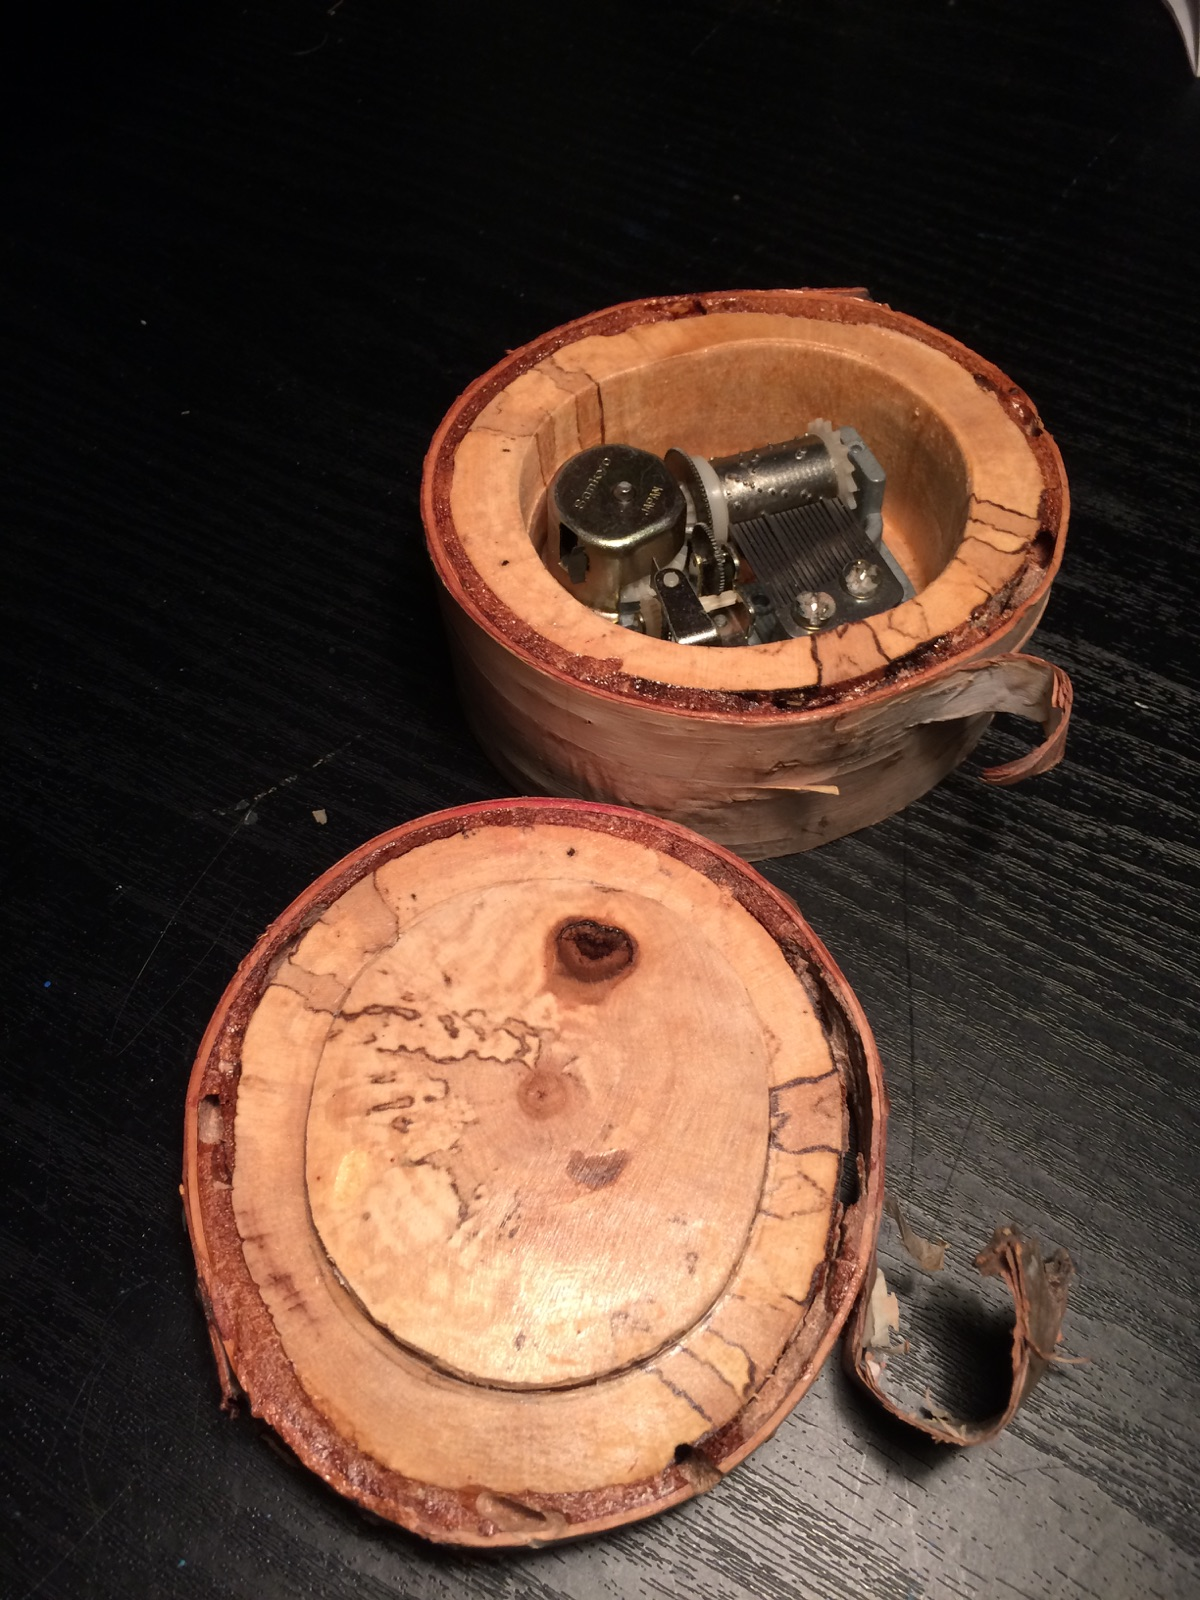 A new life for an old music box